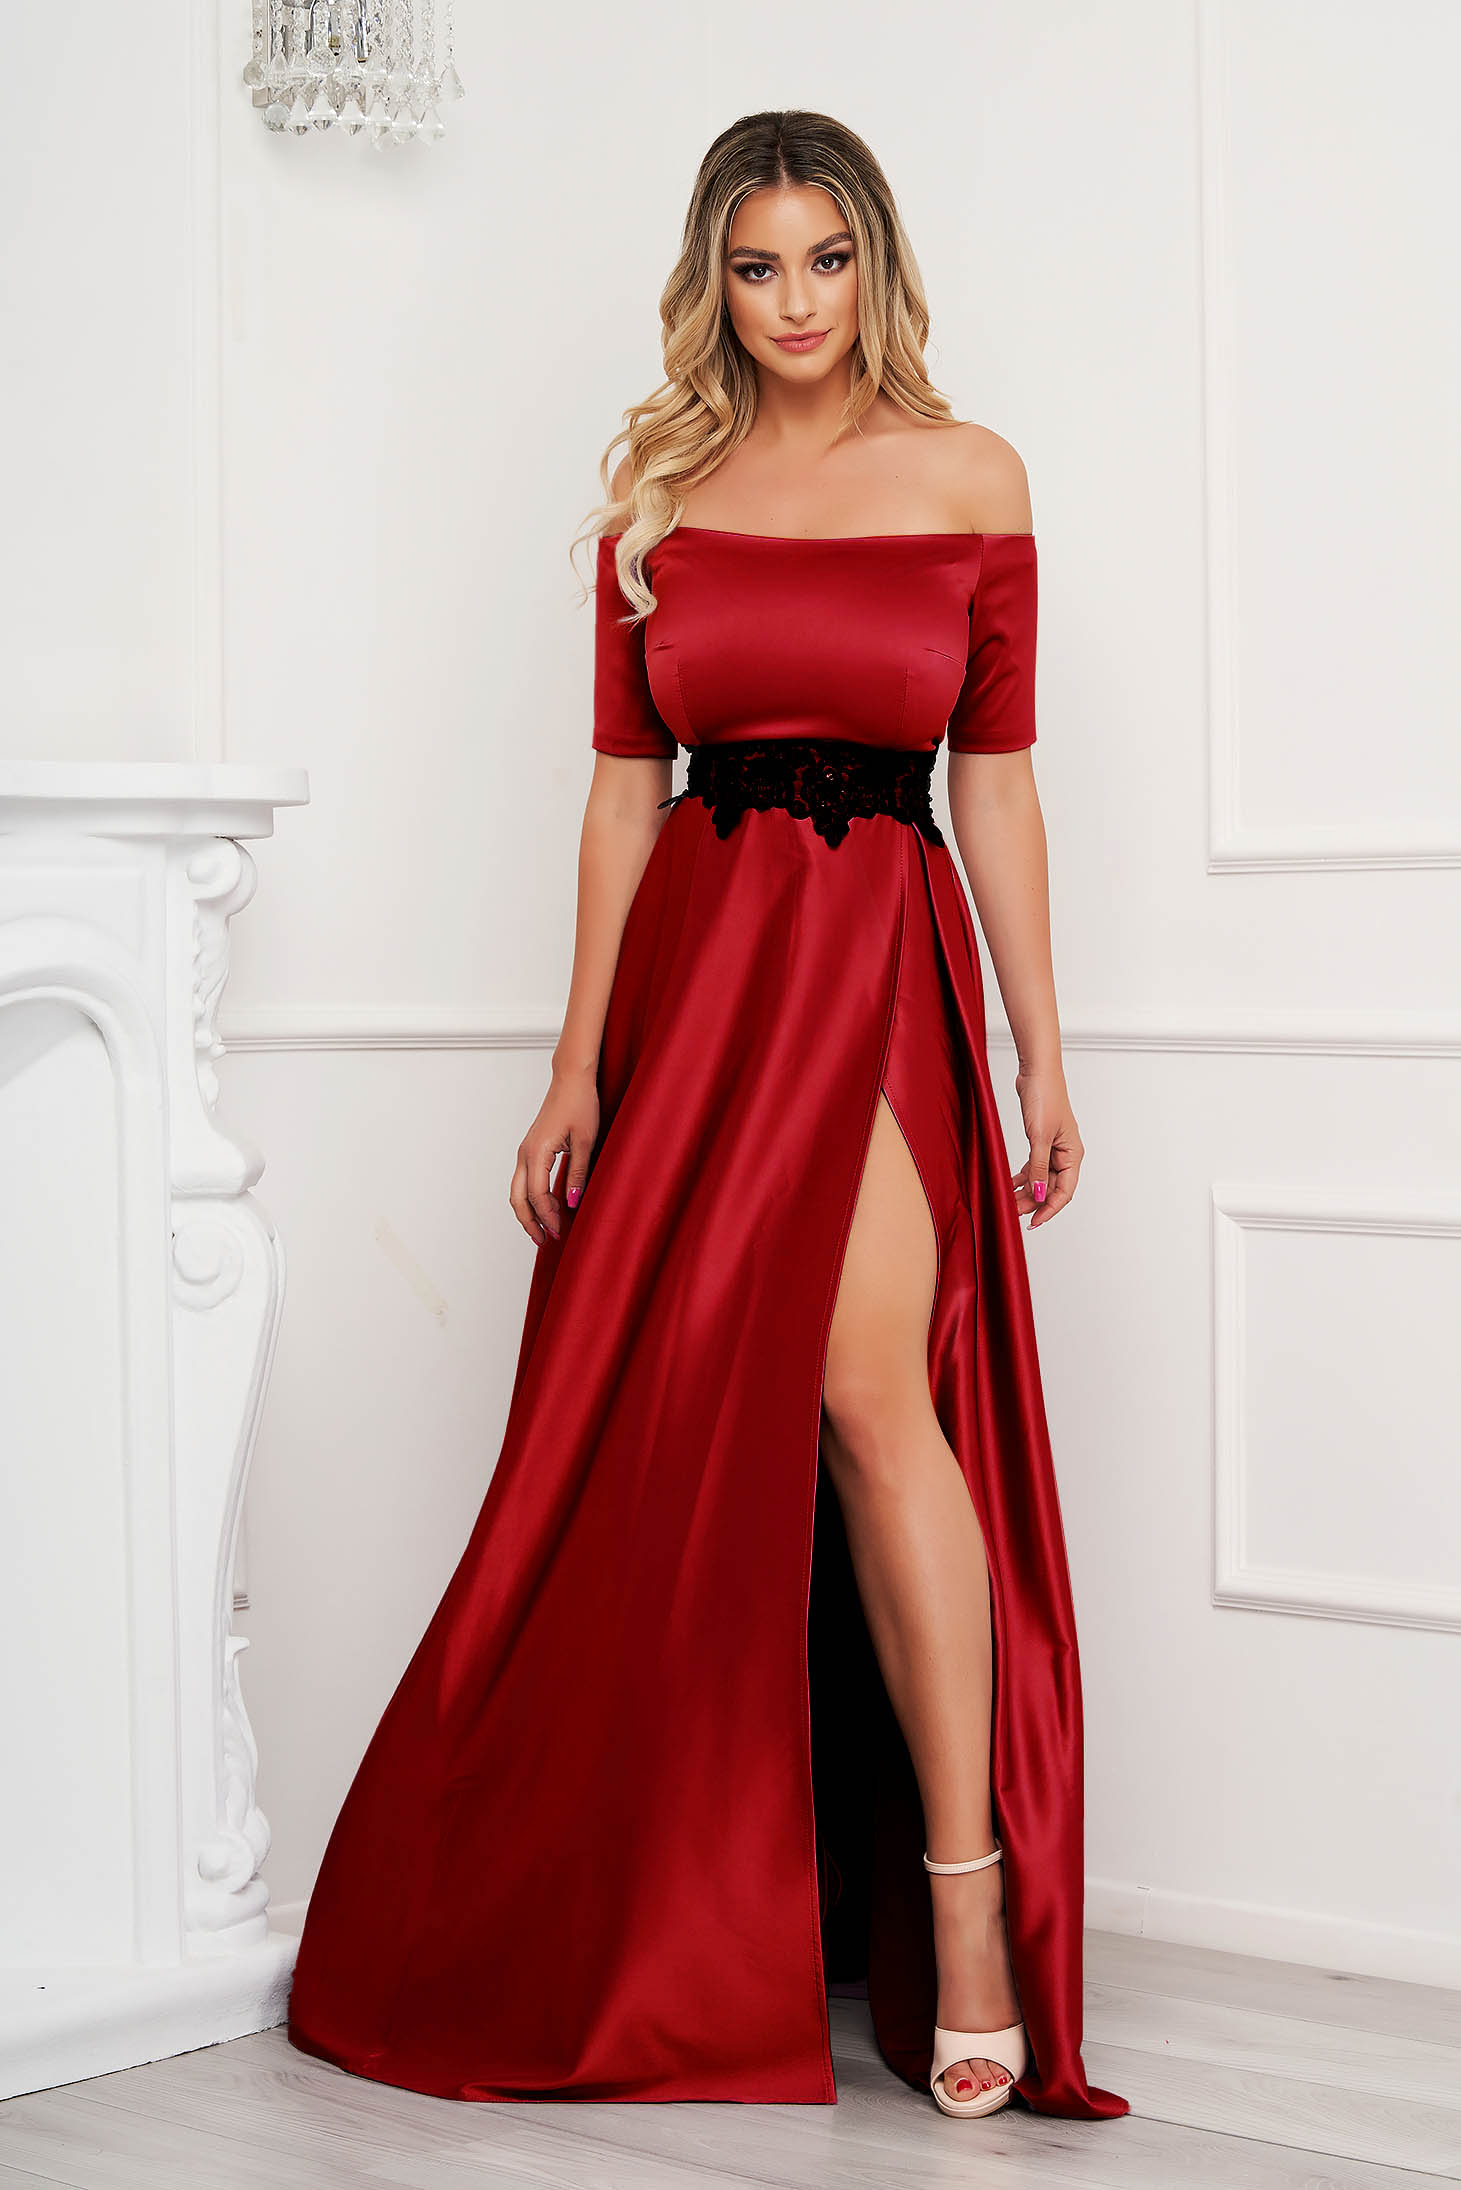 Red dress from satin cloche occasional with embroidery details on the shoulders slit